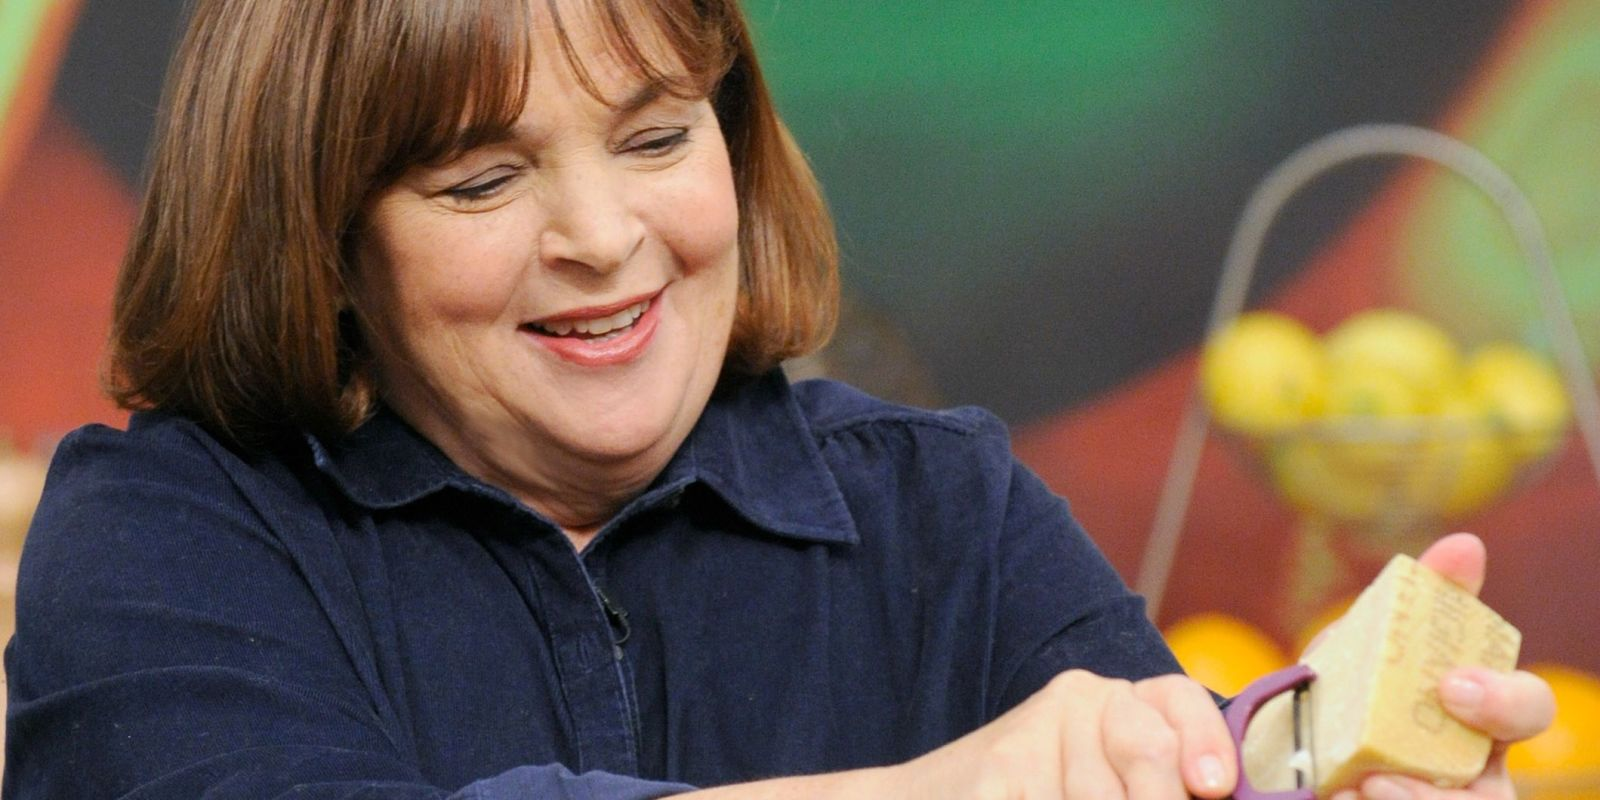 Everything you need to know about ina garten 39 s new show cook like a pro ina garten - Barefoot contessa cooking show ...